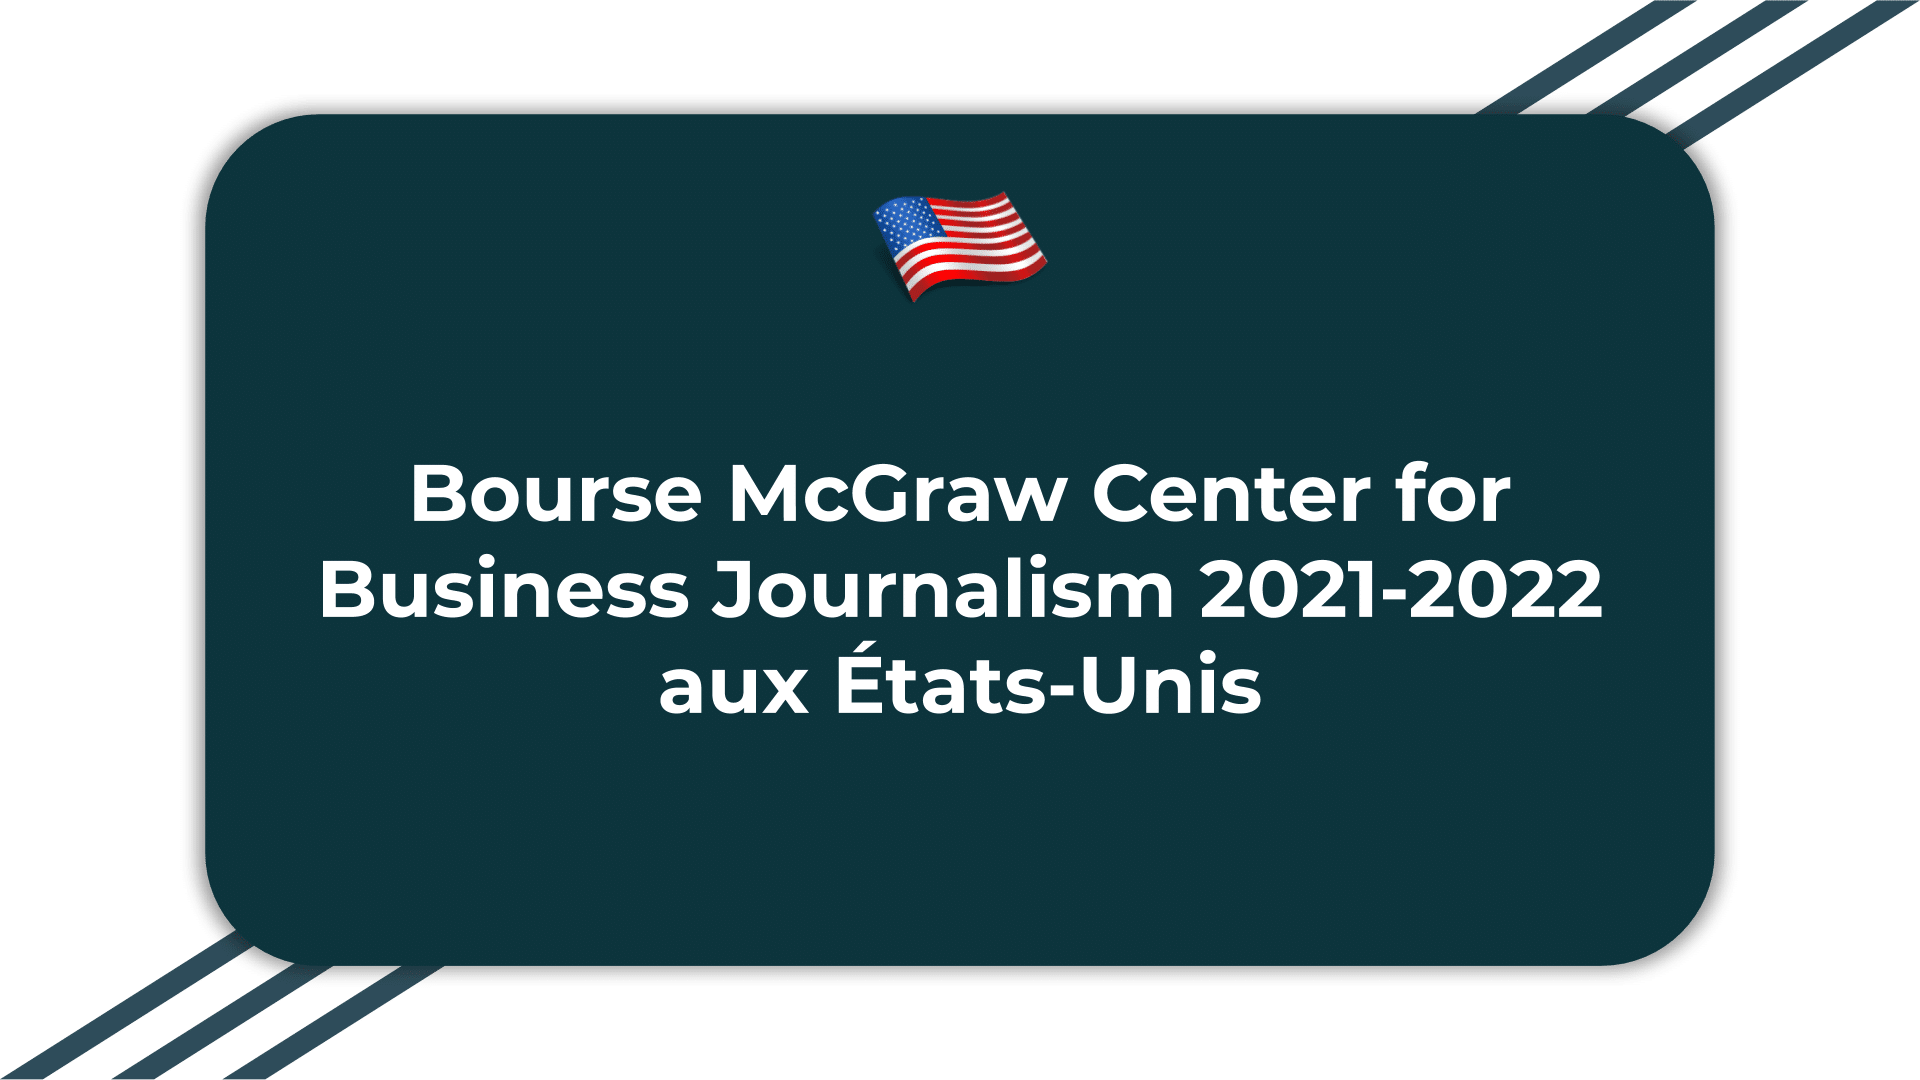 Bourse McGraw Center for Business Journalism